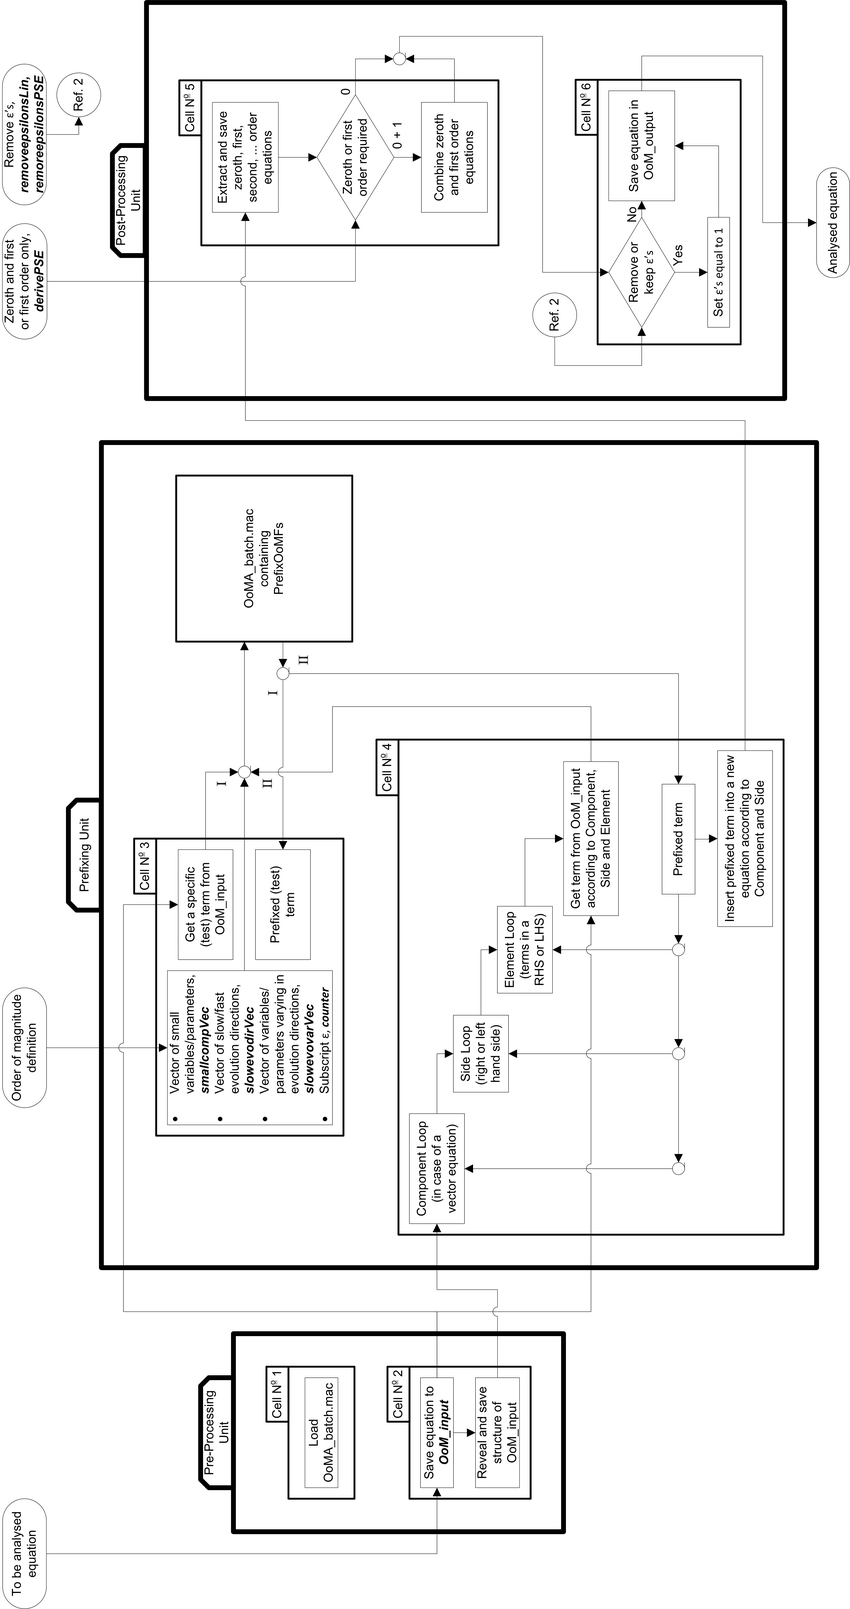 medium resolution of 2 block diagram of the structure around ooma batch mac referred to as